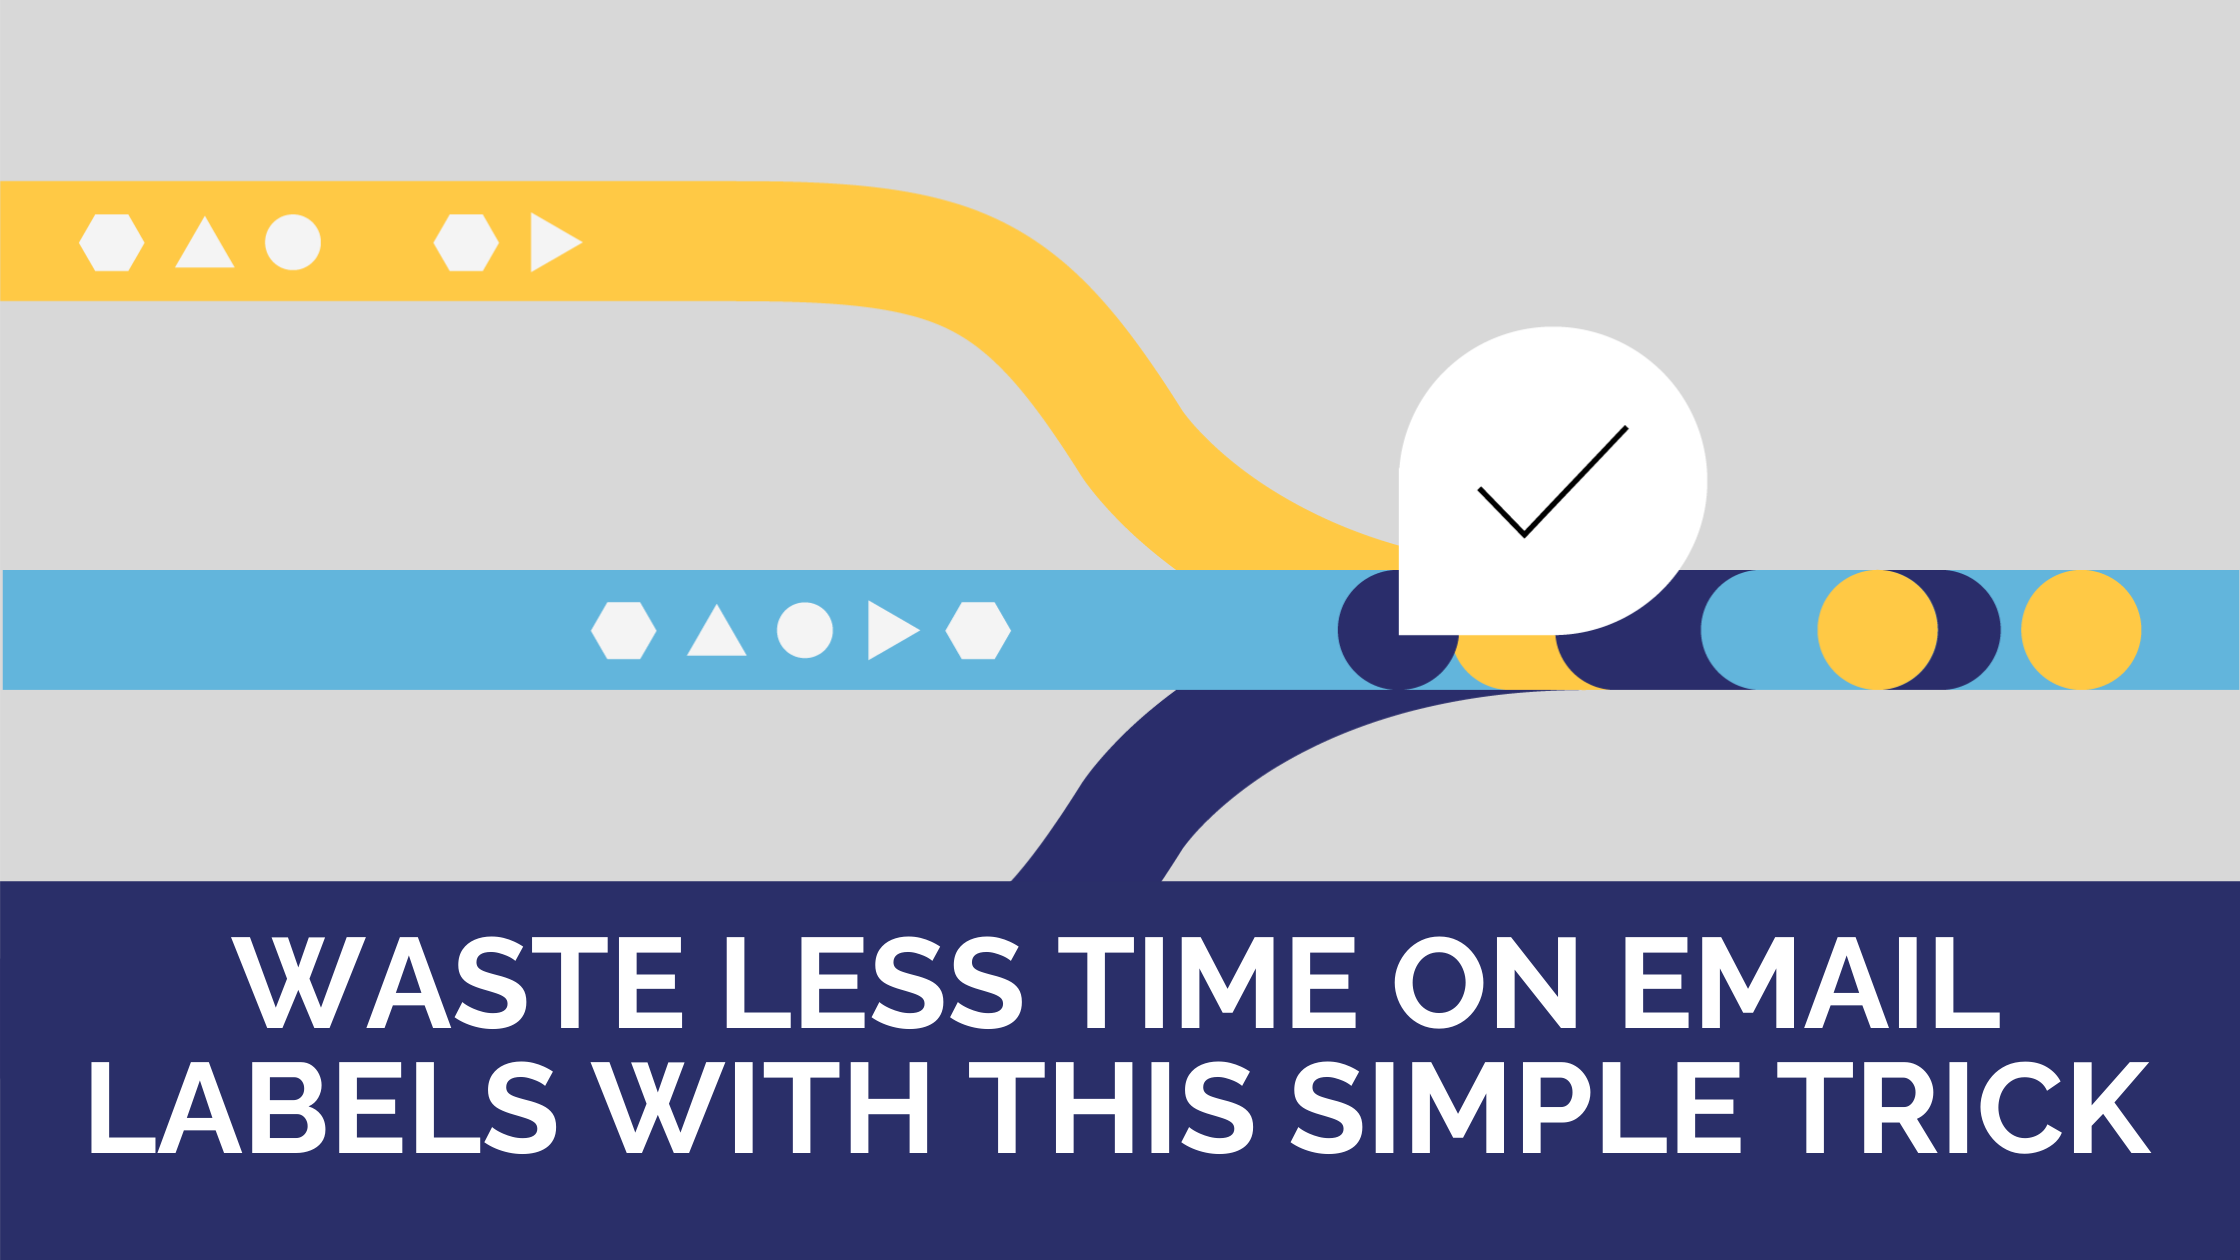 Waste less time on email labels with this simple trick